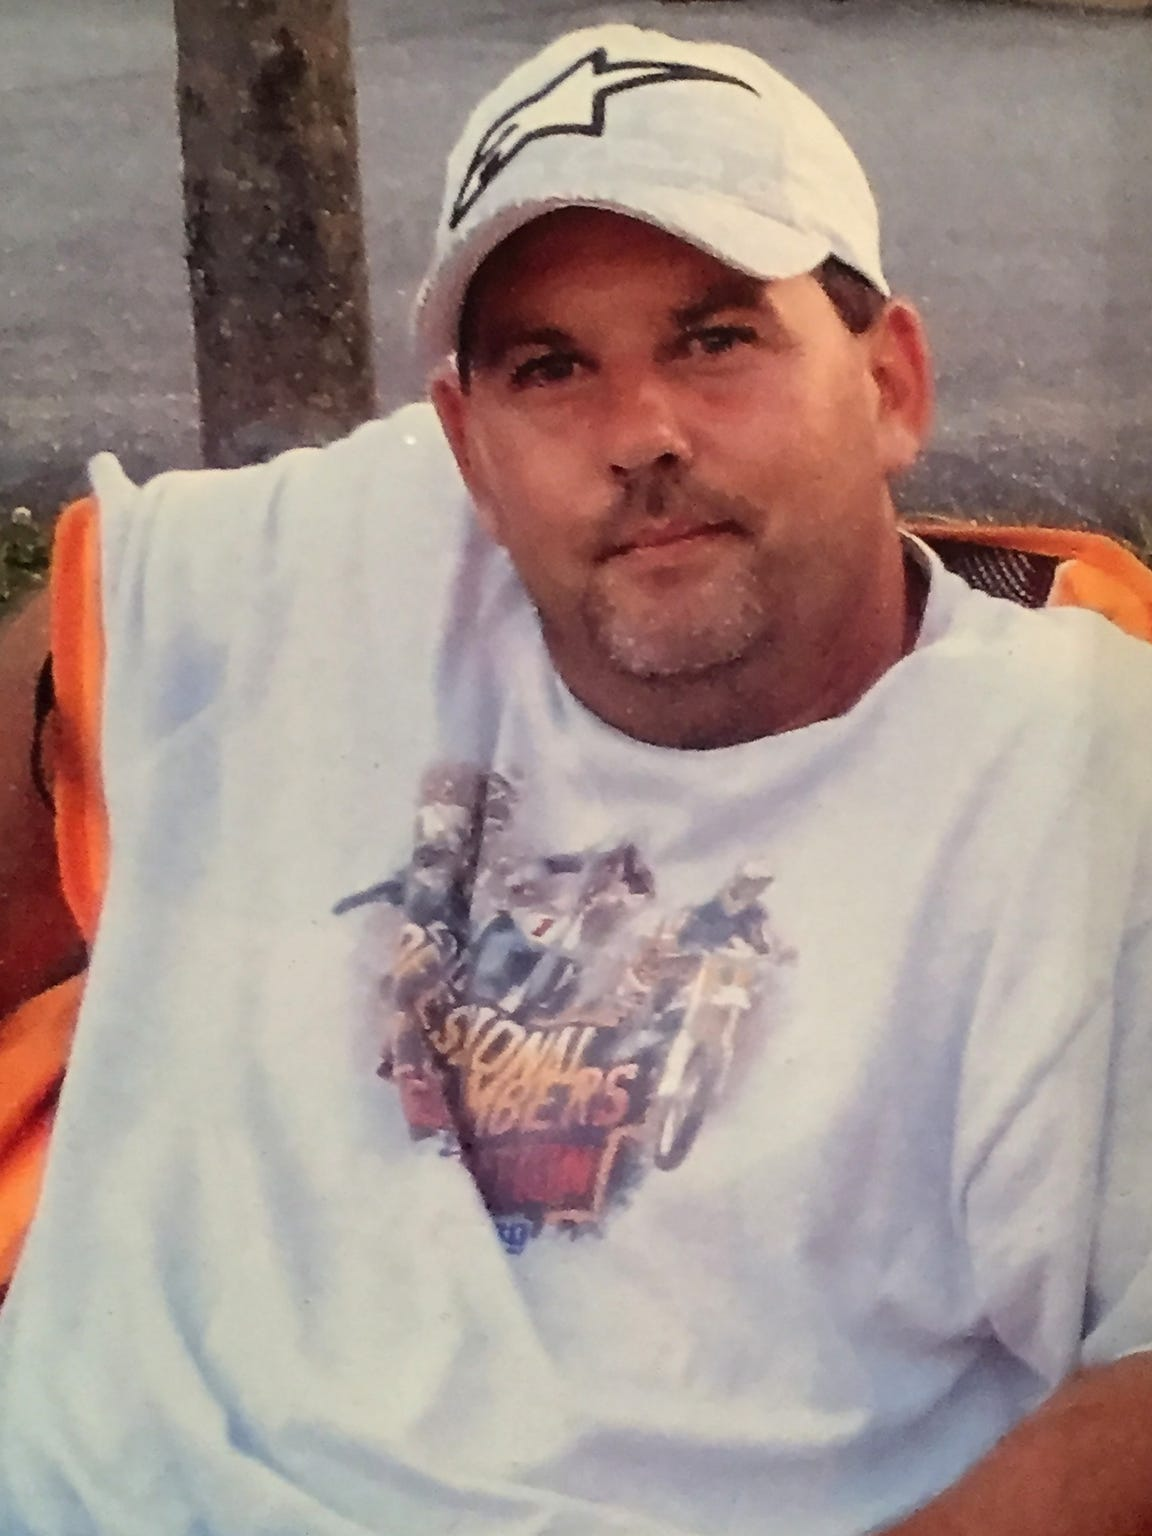 A photo of Scott Hoke, which was shown to a reporter